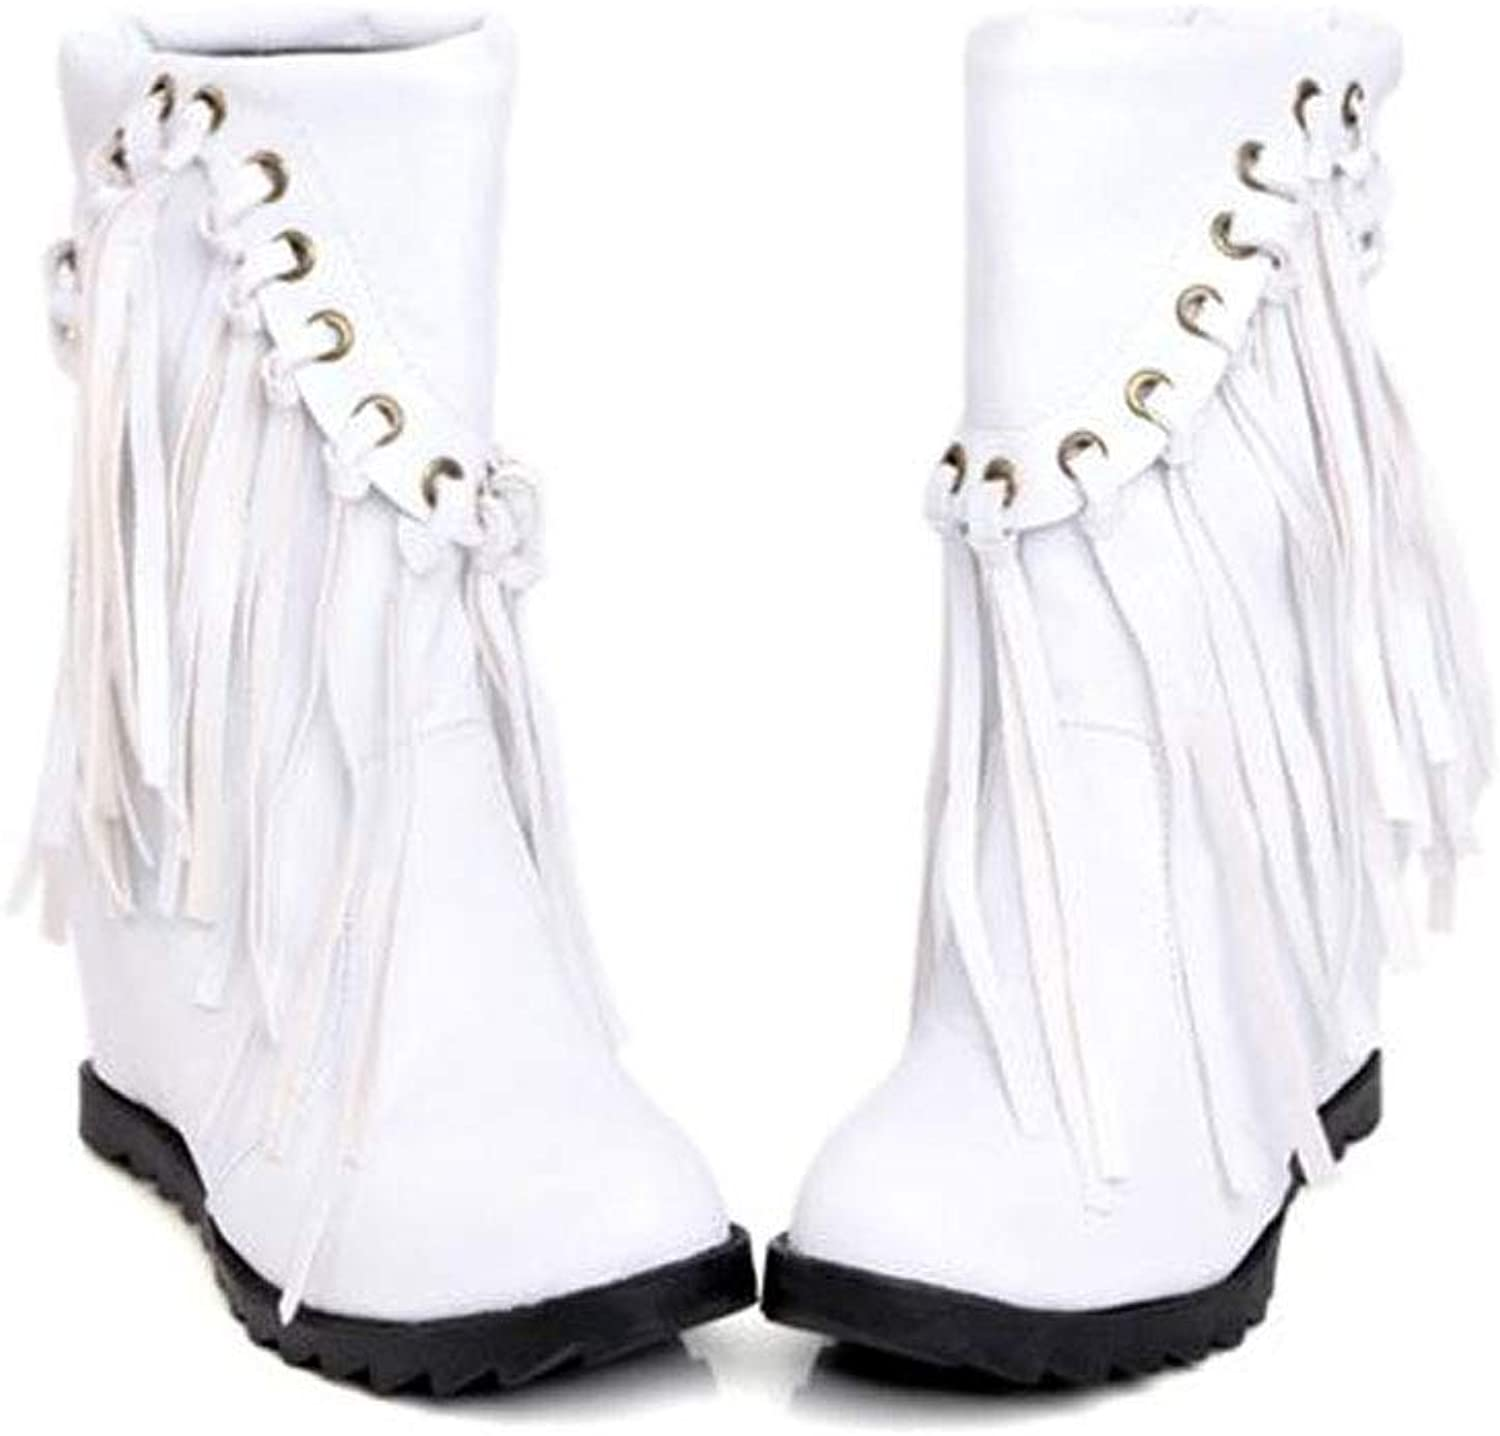 Women's Boots, Large Size Women's shoes Quality Artificial PU Fabric Perforated Tassel Decoration in The Boots Sleeve Women's Boots Plush Lining Winter Warm Boots, Comfortable Casual shoes,White,43